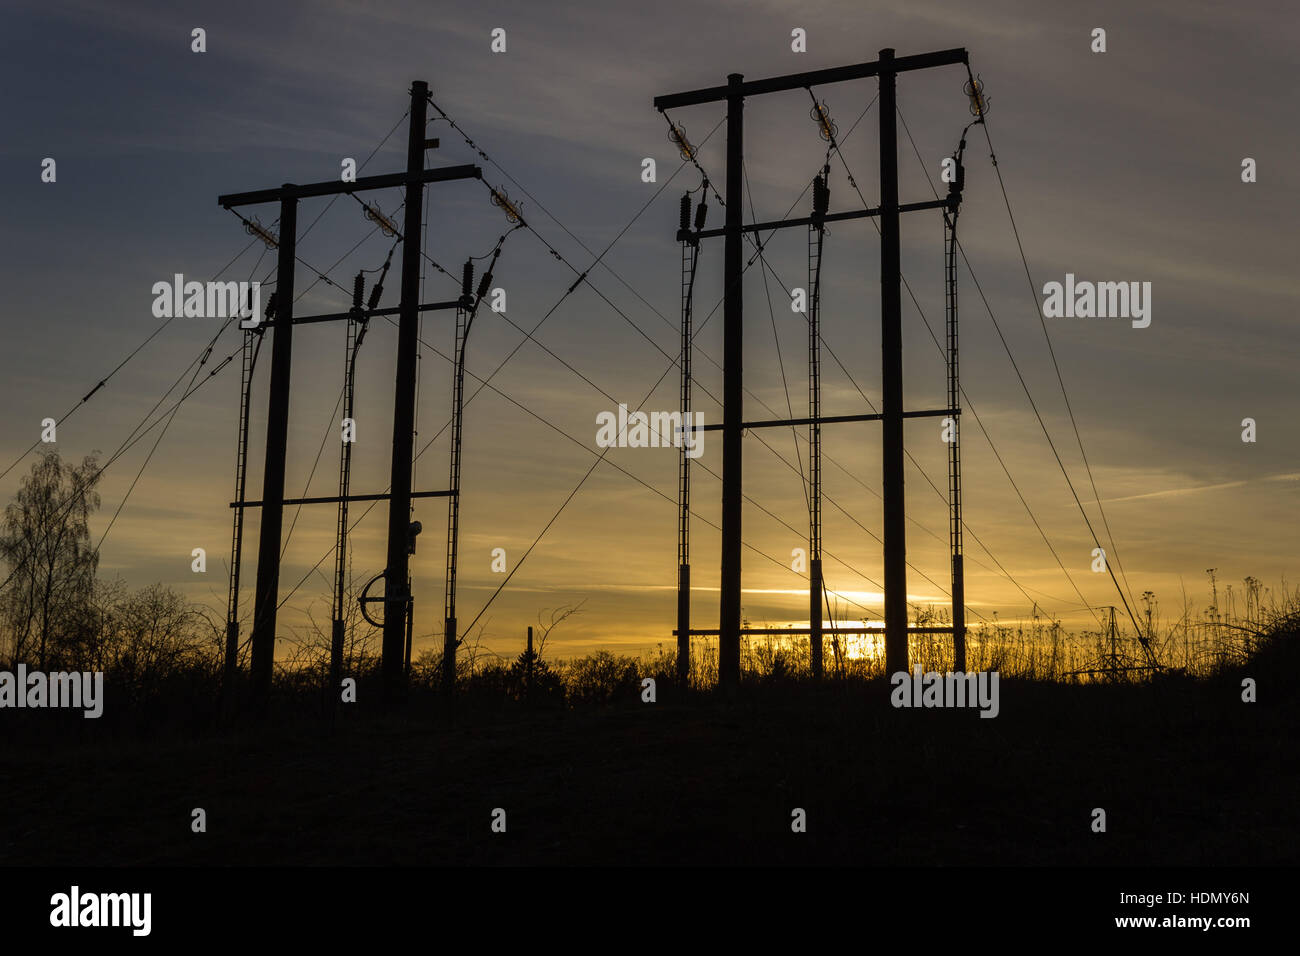 Silhouettes of power lines in a sunset scenario - Stock Image